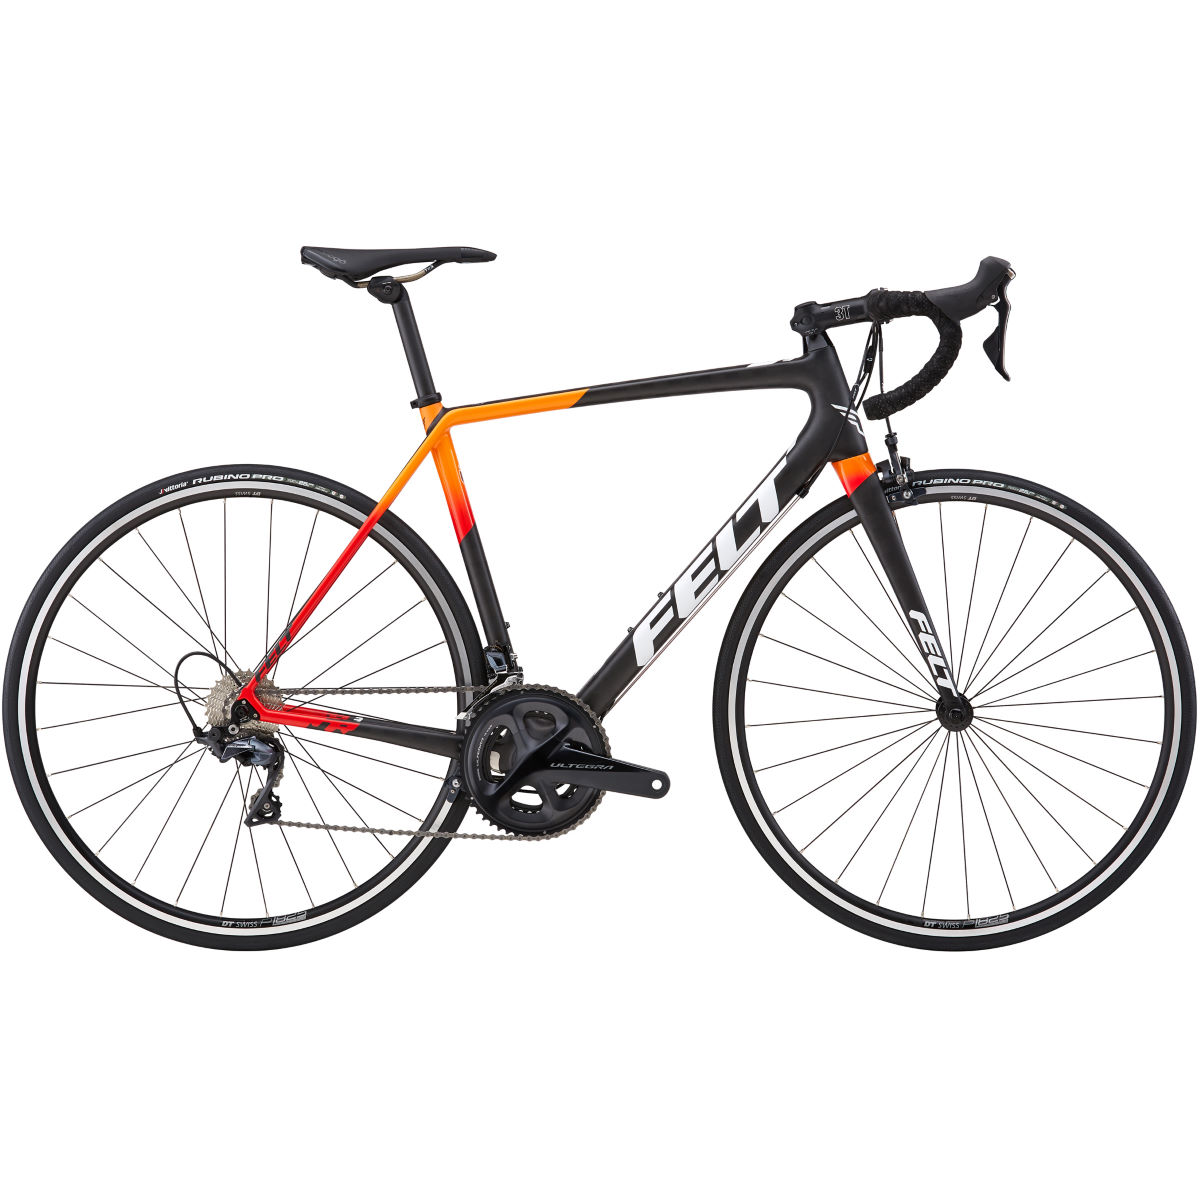 Felt FR3 (2018) Road Race Bike - Bicicletas de carretera